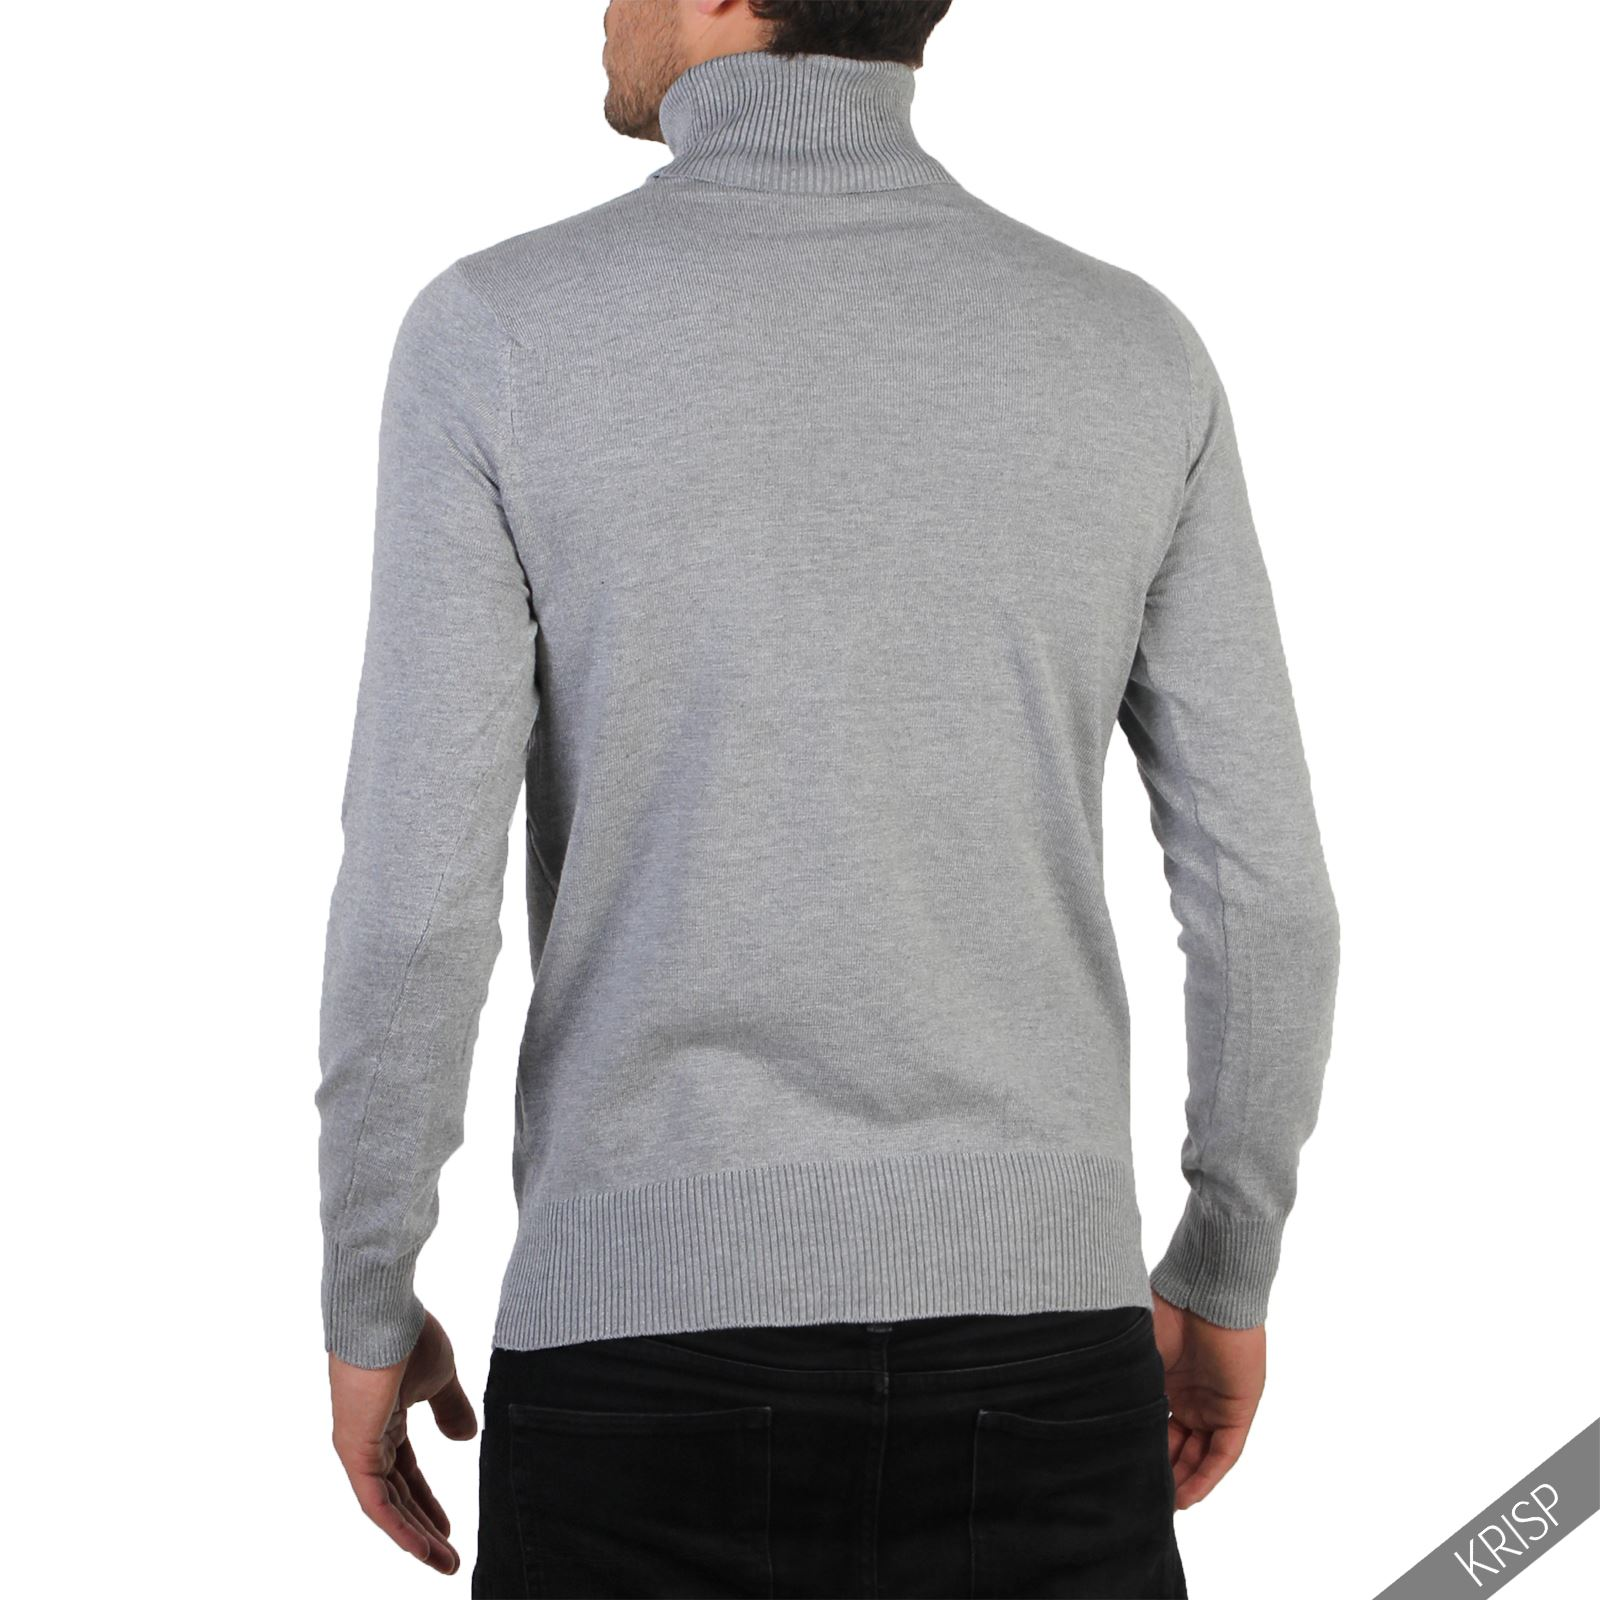 Mens-Turtle-Neck-Roll-Jumper-Sweater-Cotton-Knitwear-Winter-Pullover-Polo-Top thumbnail 13